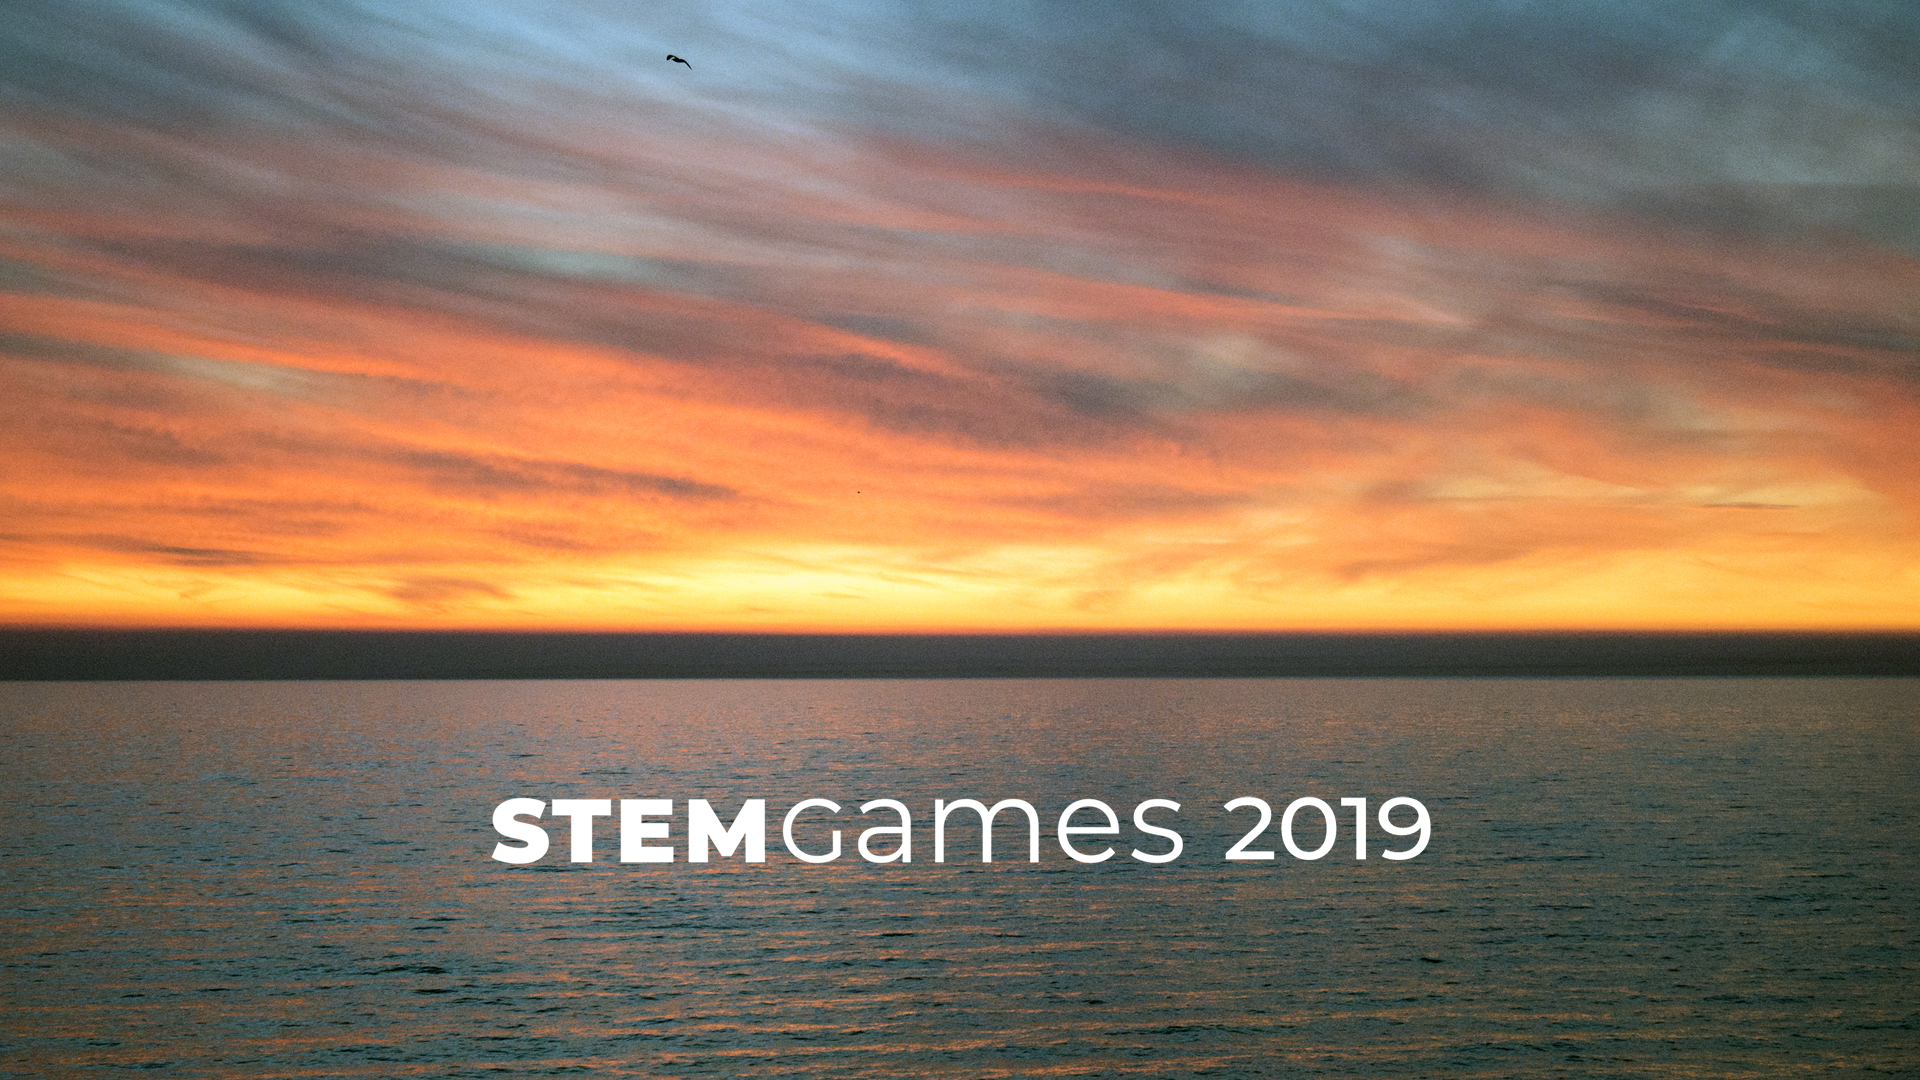 20181019 – STEM Games – Cover logo i tekst 1080